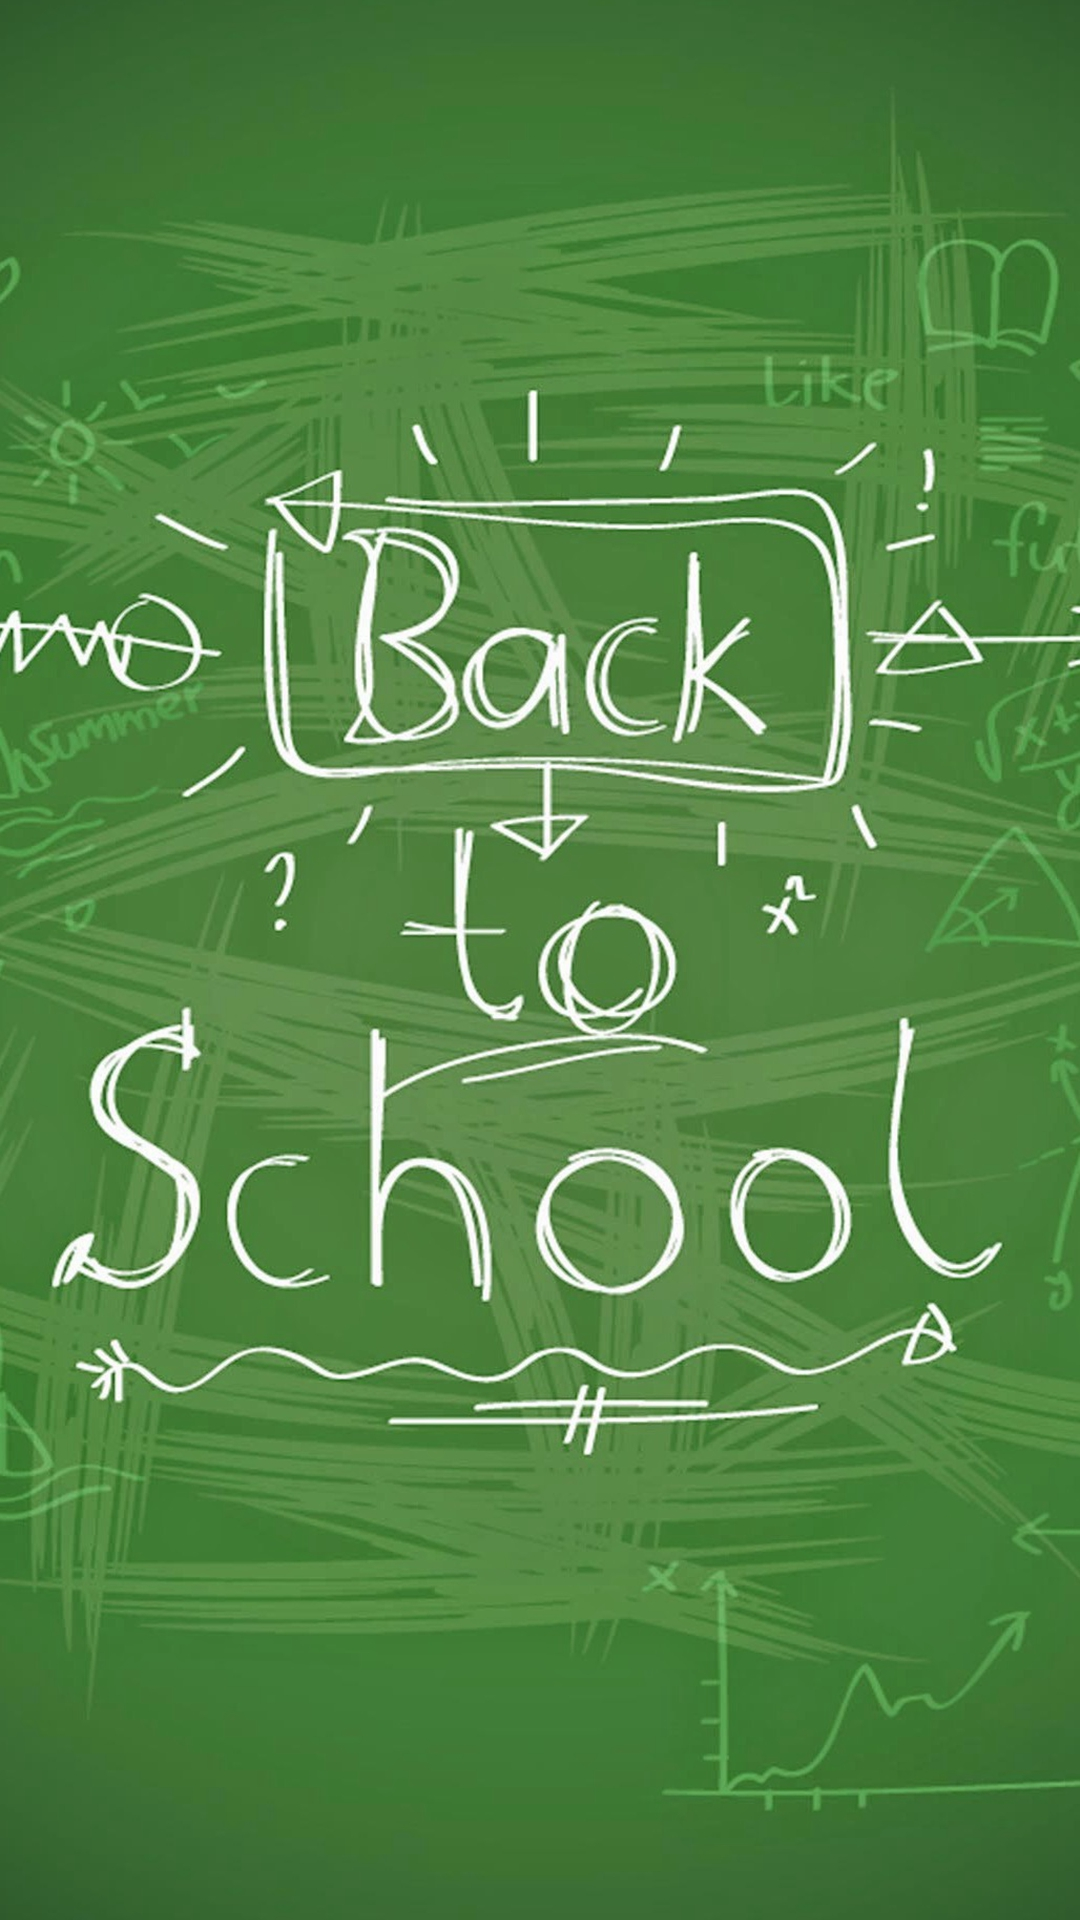 Back-To-School-Handwriting-iPhone-plus-wallpaper-wp5204369